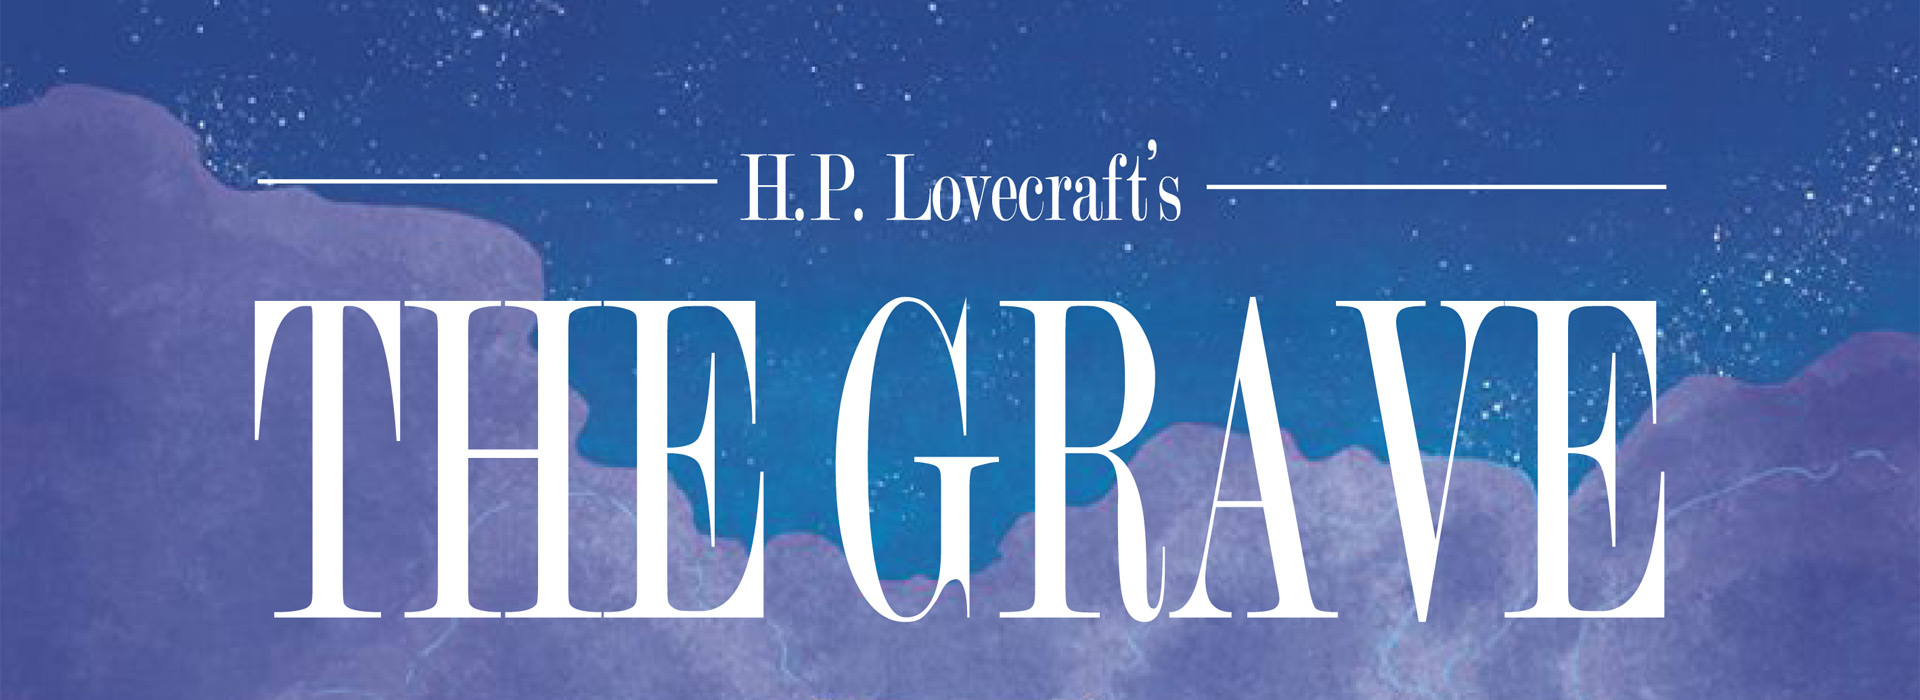 H.P. Lovecraft's The Grave